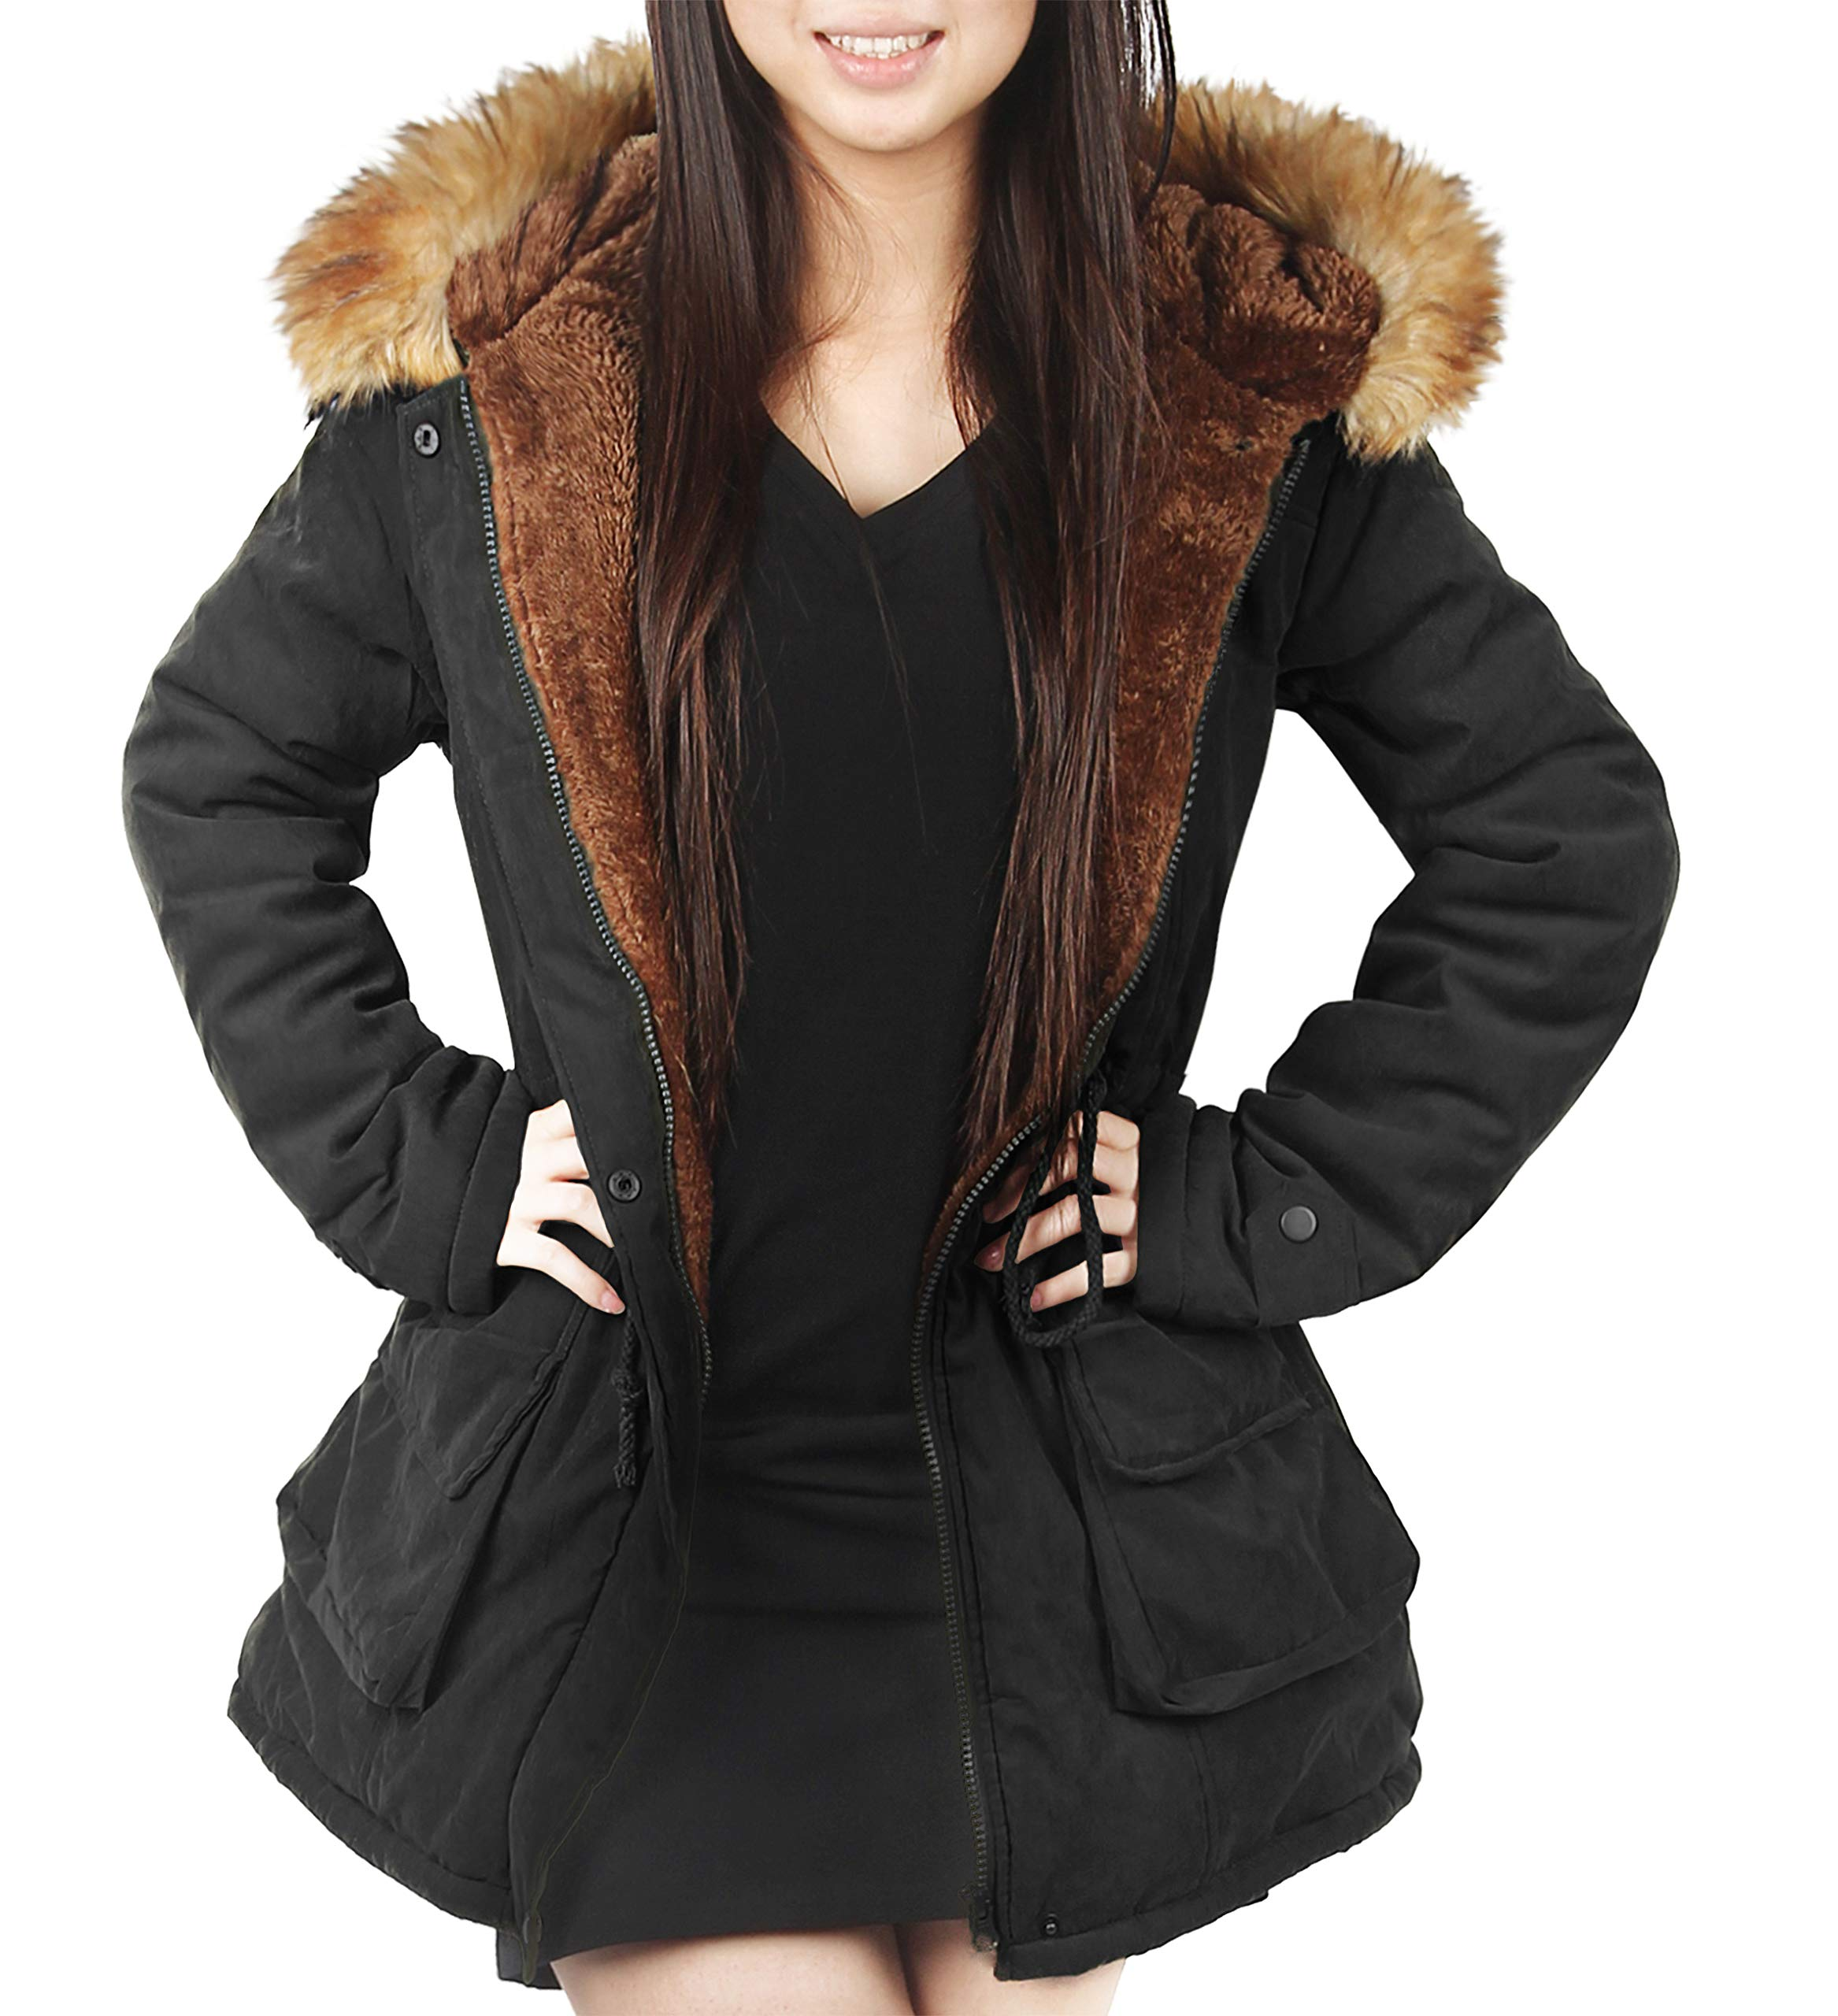 277335aa7b53 4HOW Womens Hooded Parka Jacket Winter Coat Warm Faux Fur Parkas Outdoor  product image